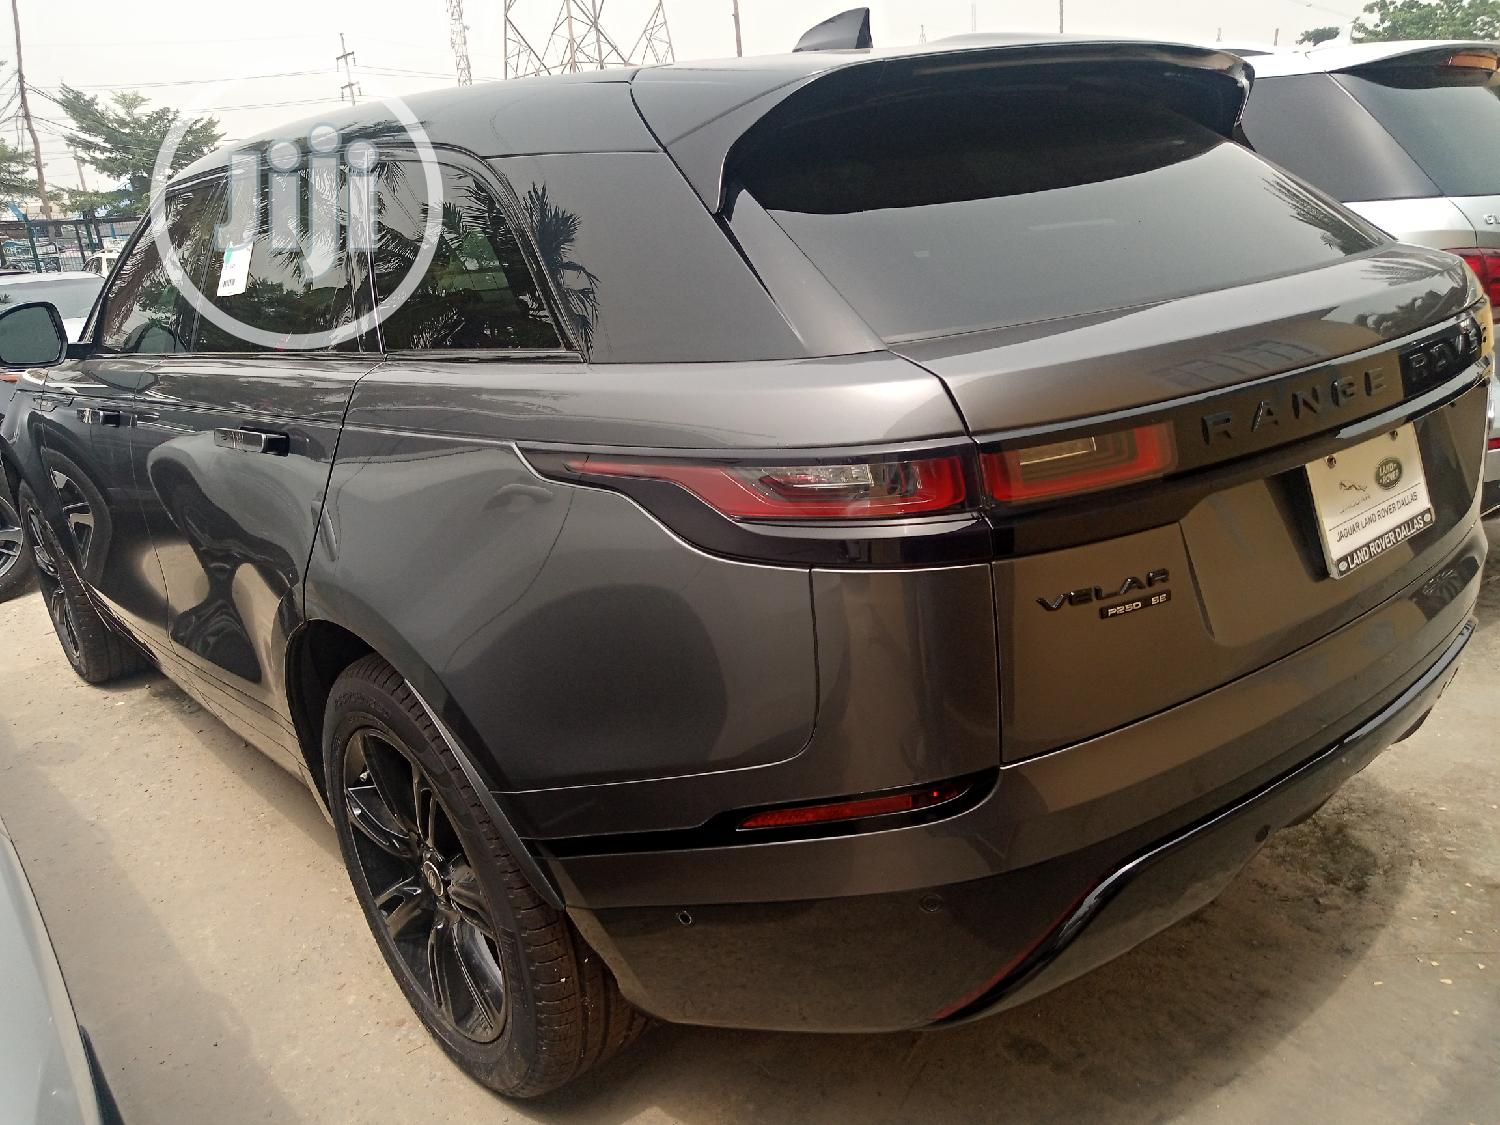 Land Rover Range Rover Velar 2018 P250 SE R-Dynamic 4x4 Gray | Cars for sale in Ajah, Lagos State, Nigeria